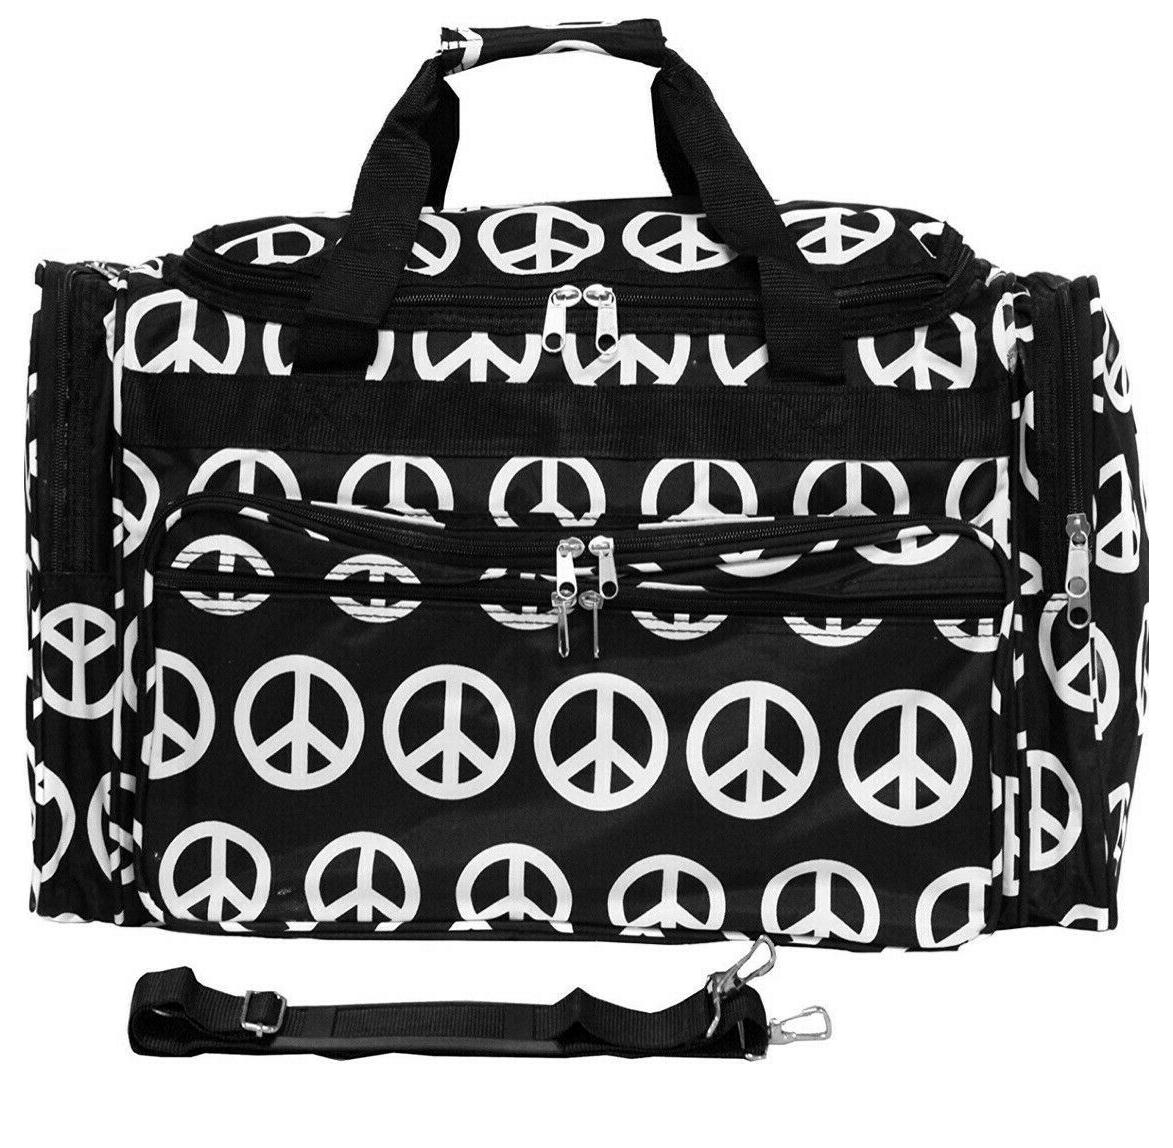 FASHION BAG CARRY-ON BAGGAGE WEEKEND TOTE